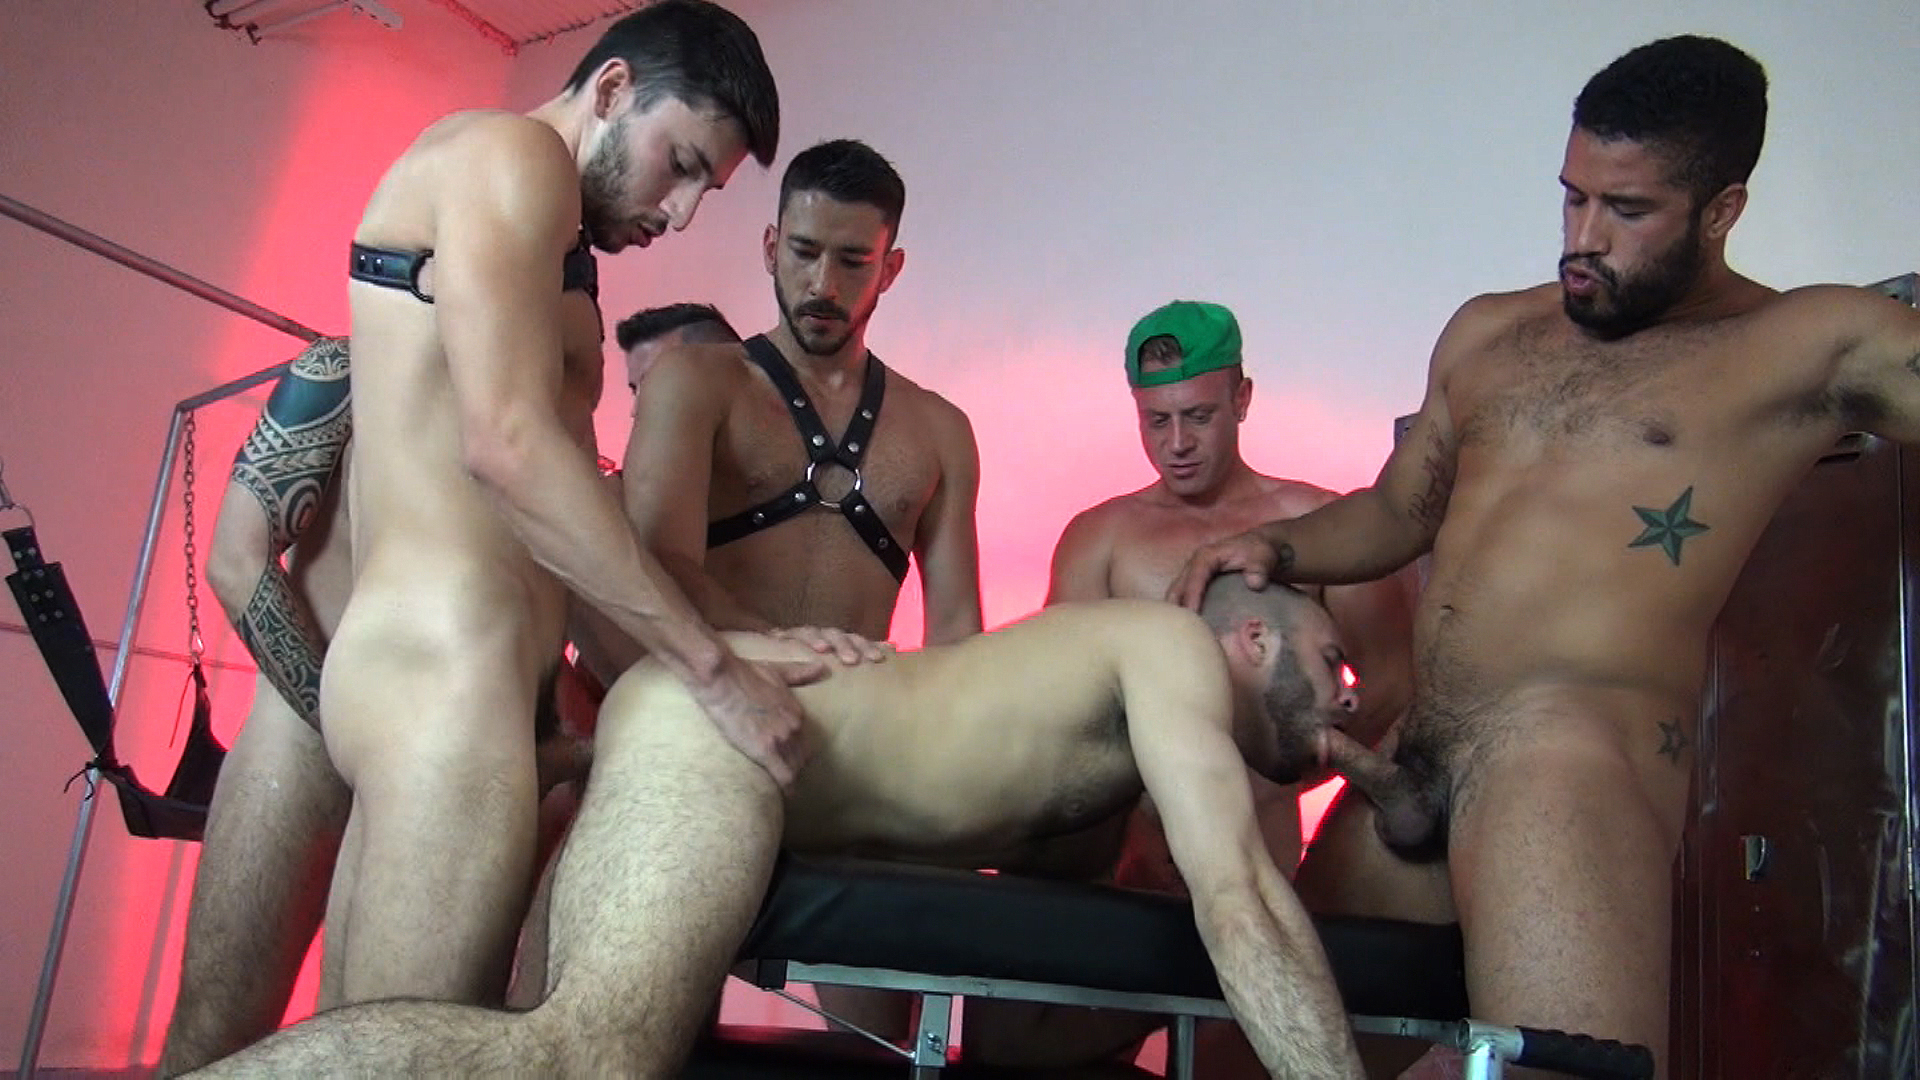 Bareback Orgy with Braxton Smith